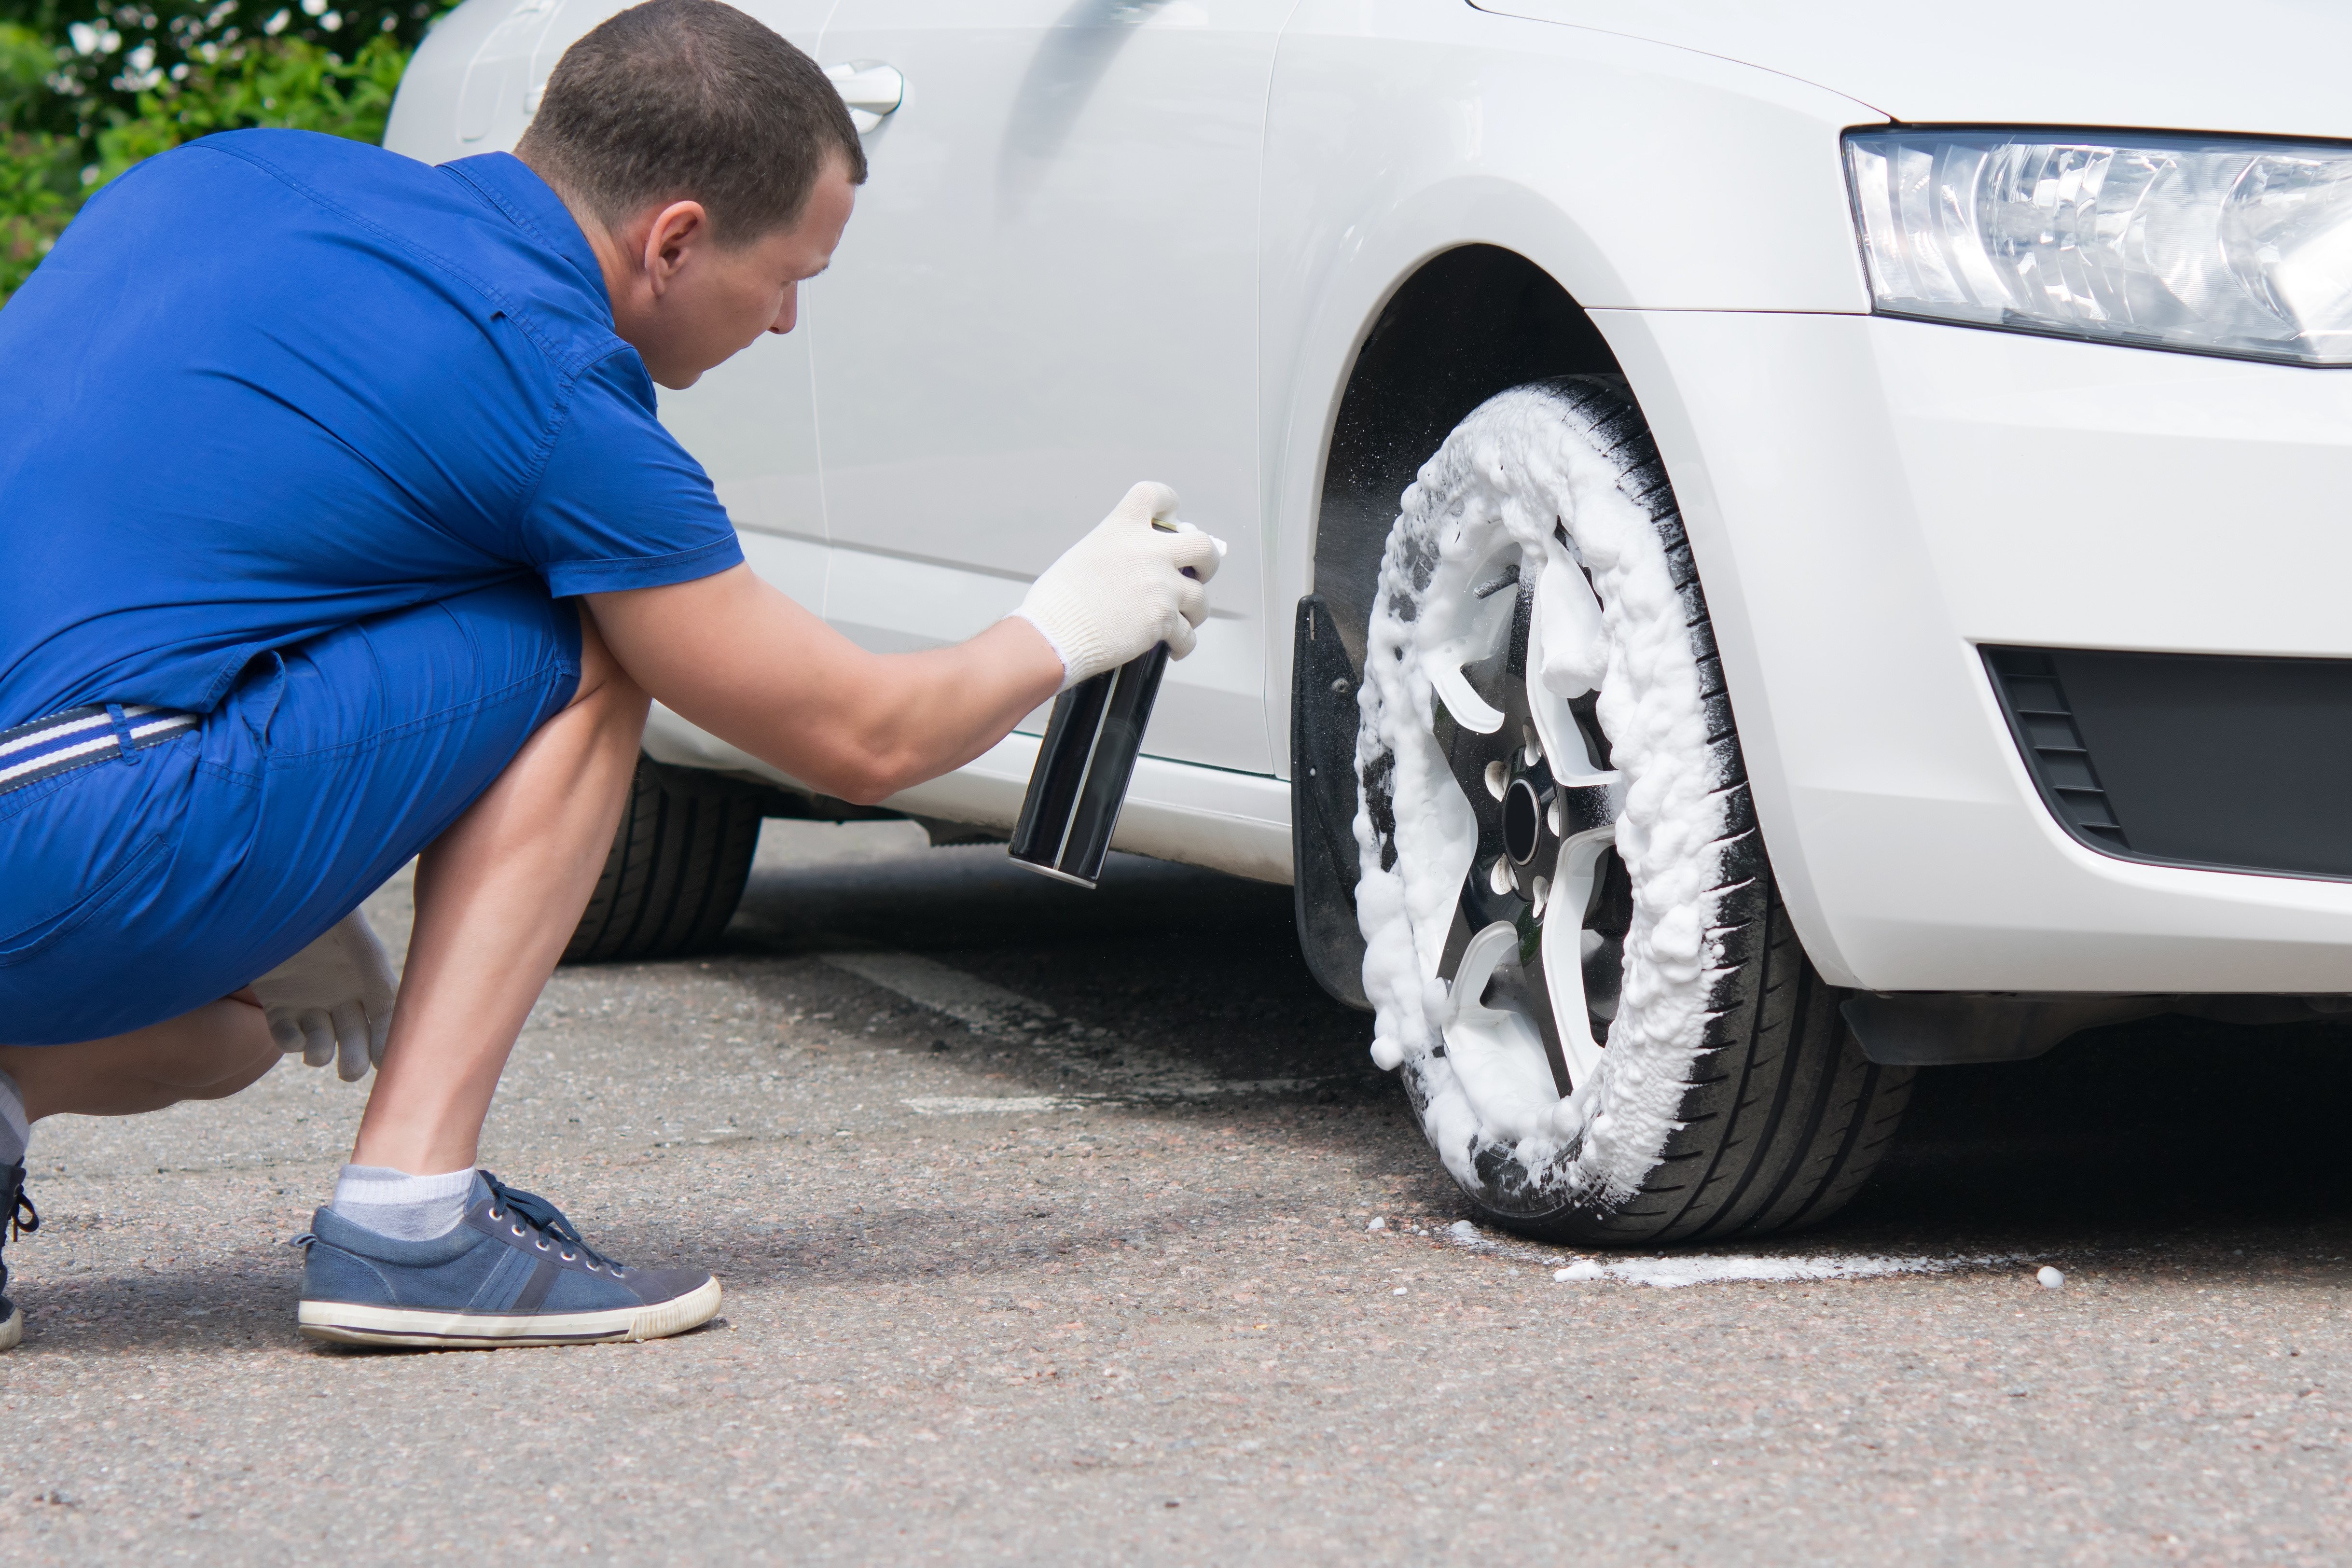 Help Your Customers Keep Their Tires Clean with Armor All Tire Foam